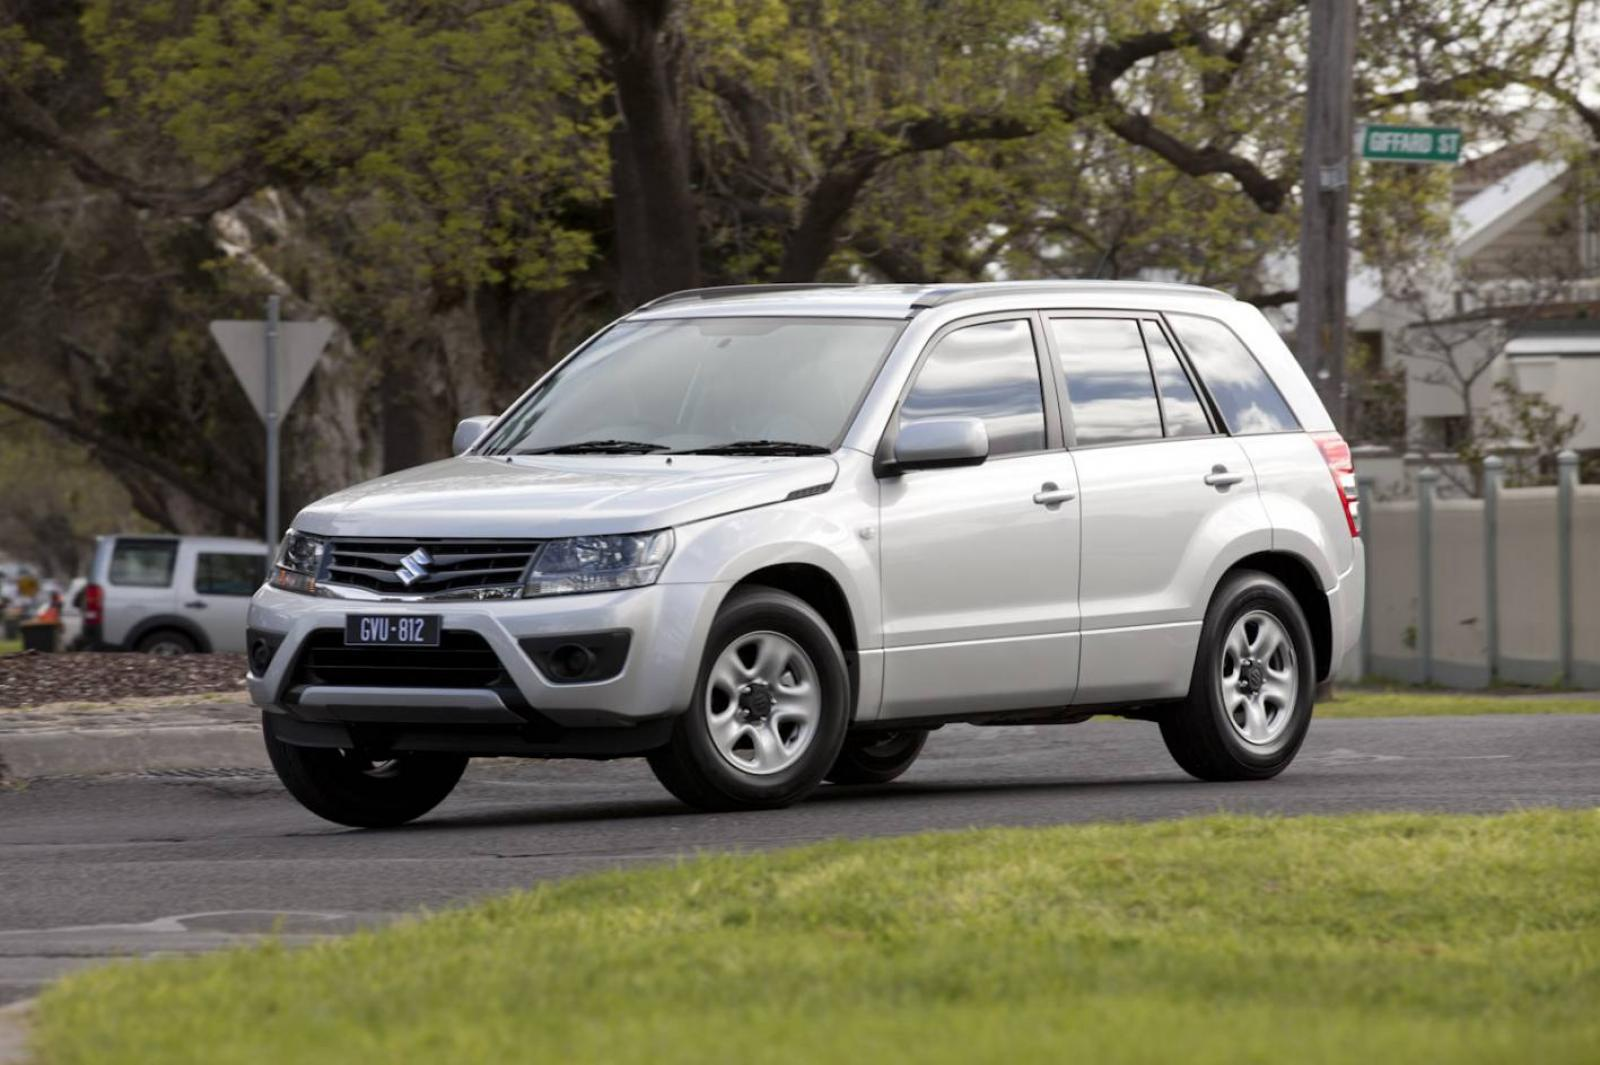 2013 suzuki grand vitara information and photos zombiedrive. Black Bedroom Furniture Sets. Home Design Ideas